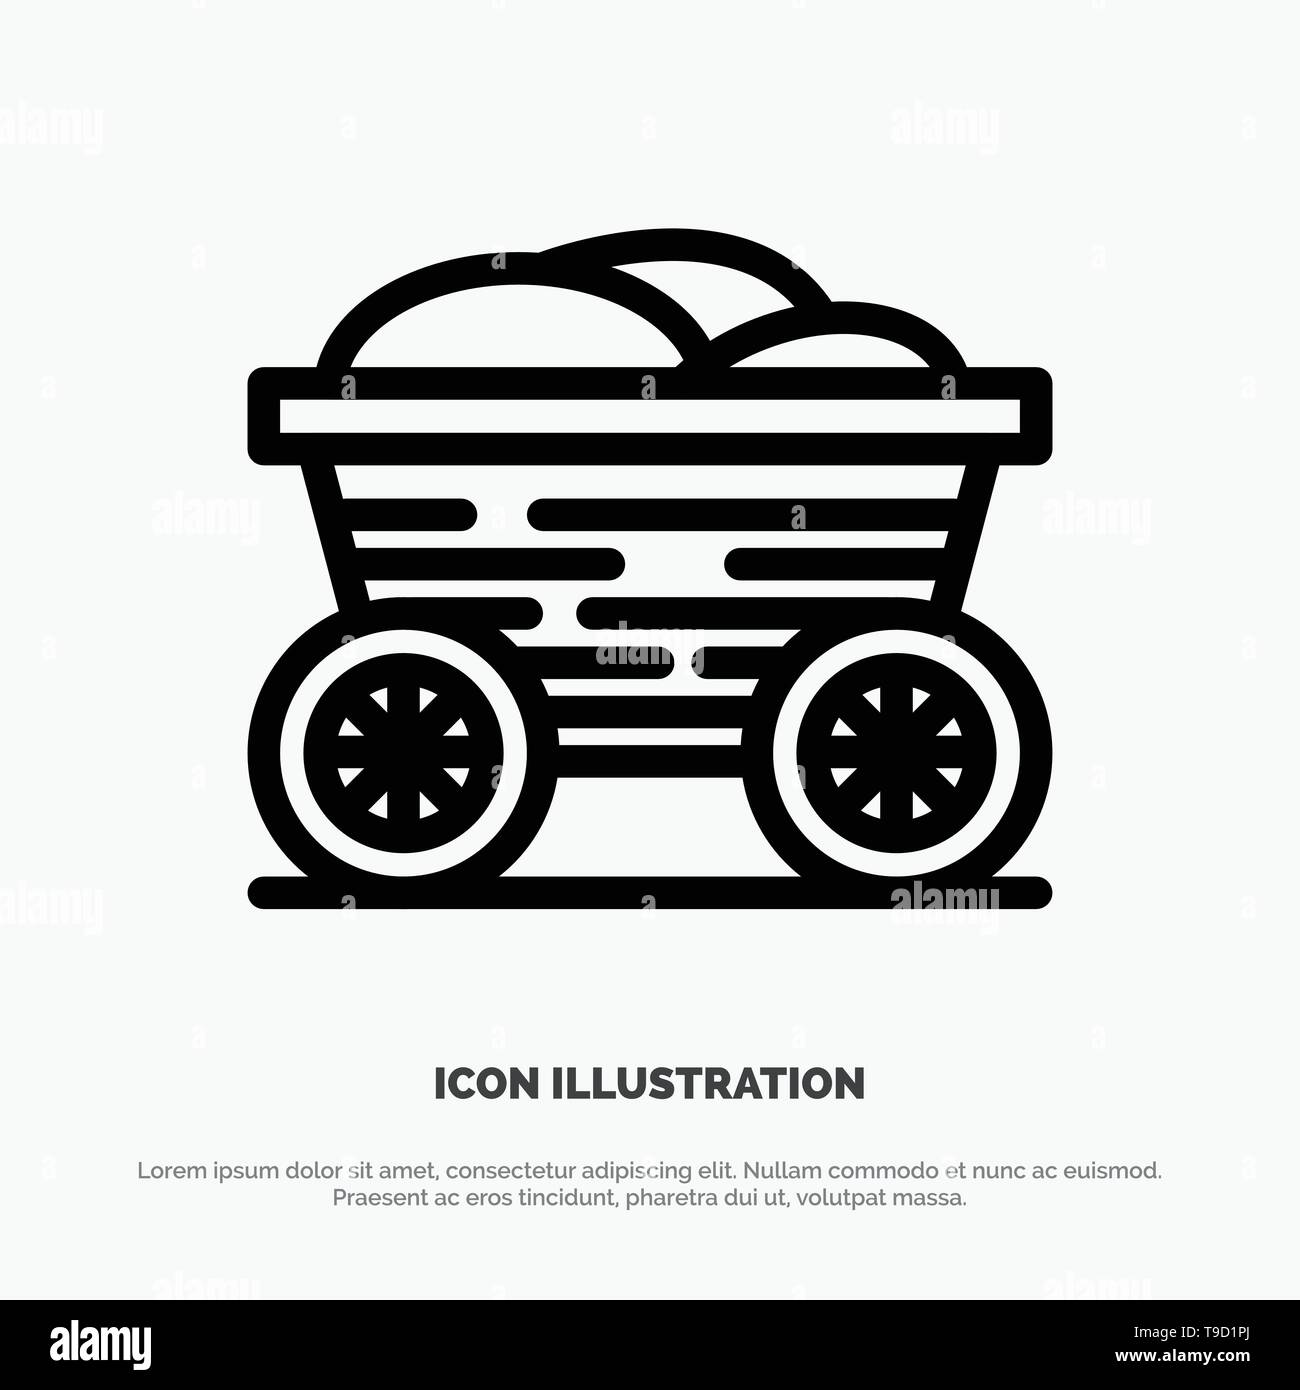 Trolley, Cart, Food, Bangladesh Line Icon Vector - Stock Vector